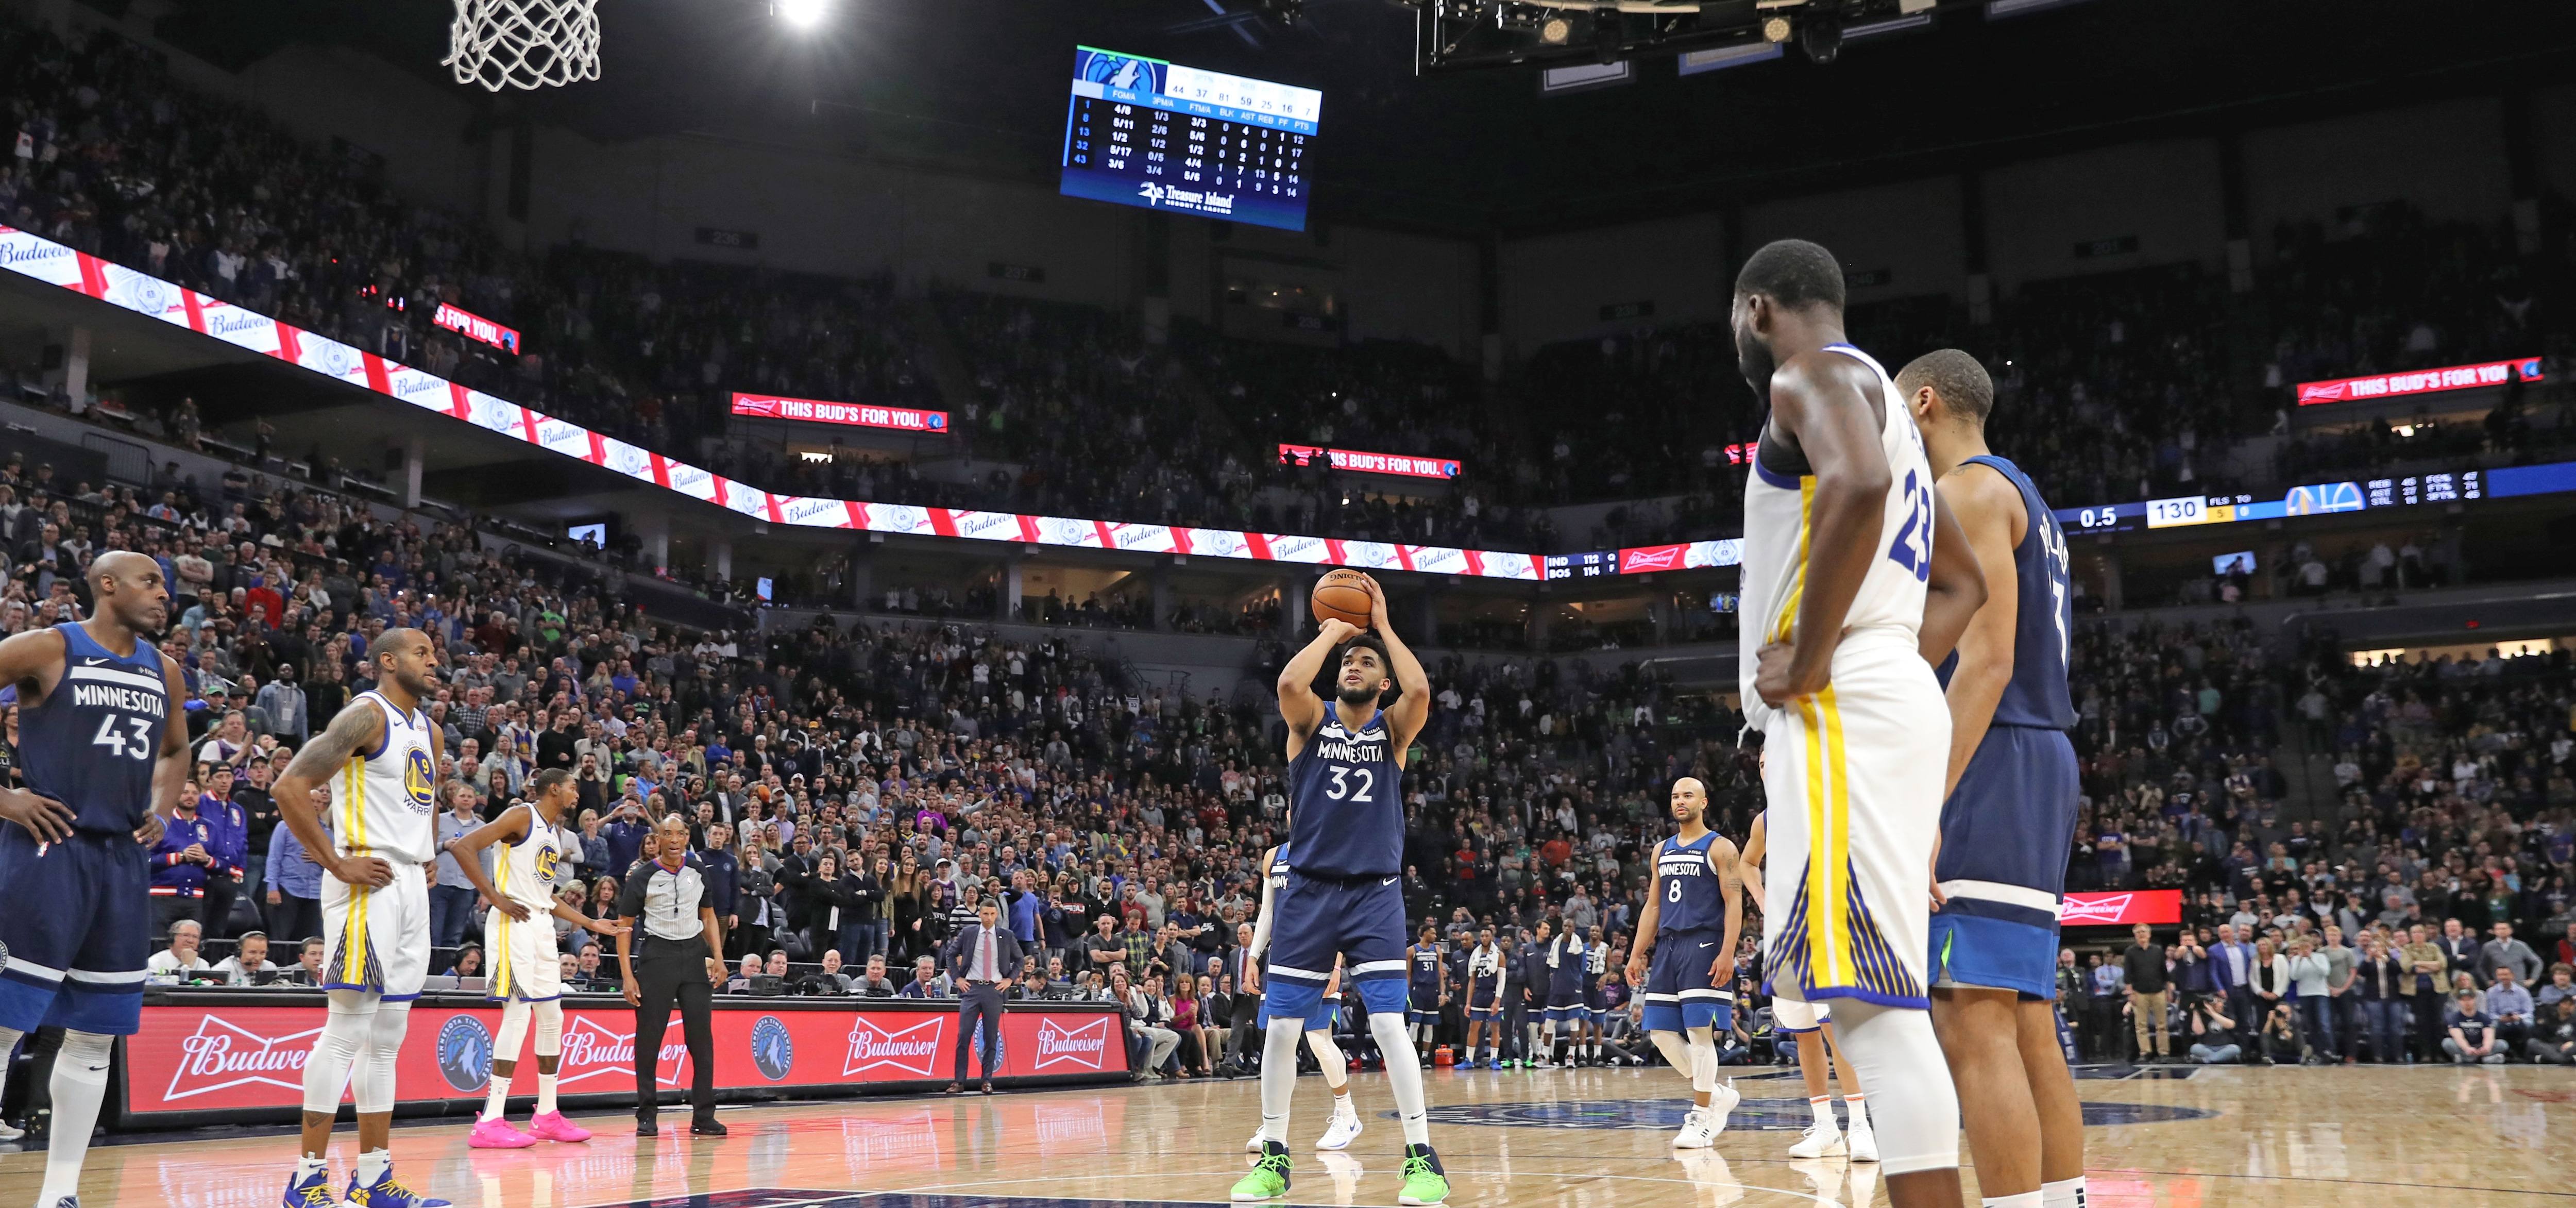 e135ba4c8e3 Wolves Are 1 Of 4 Teams To Beat Warriors In Every Season Since 2015-16 |  Minnesota Timberwolves